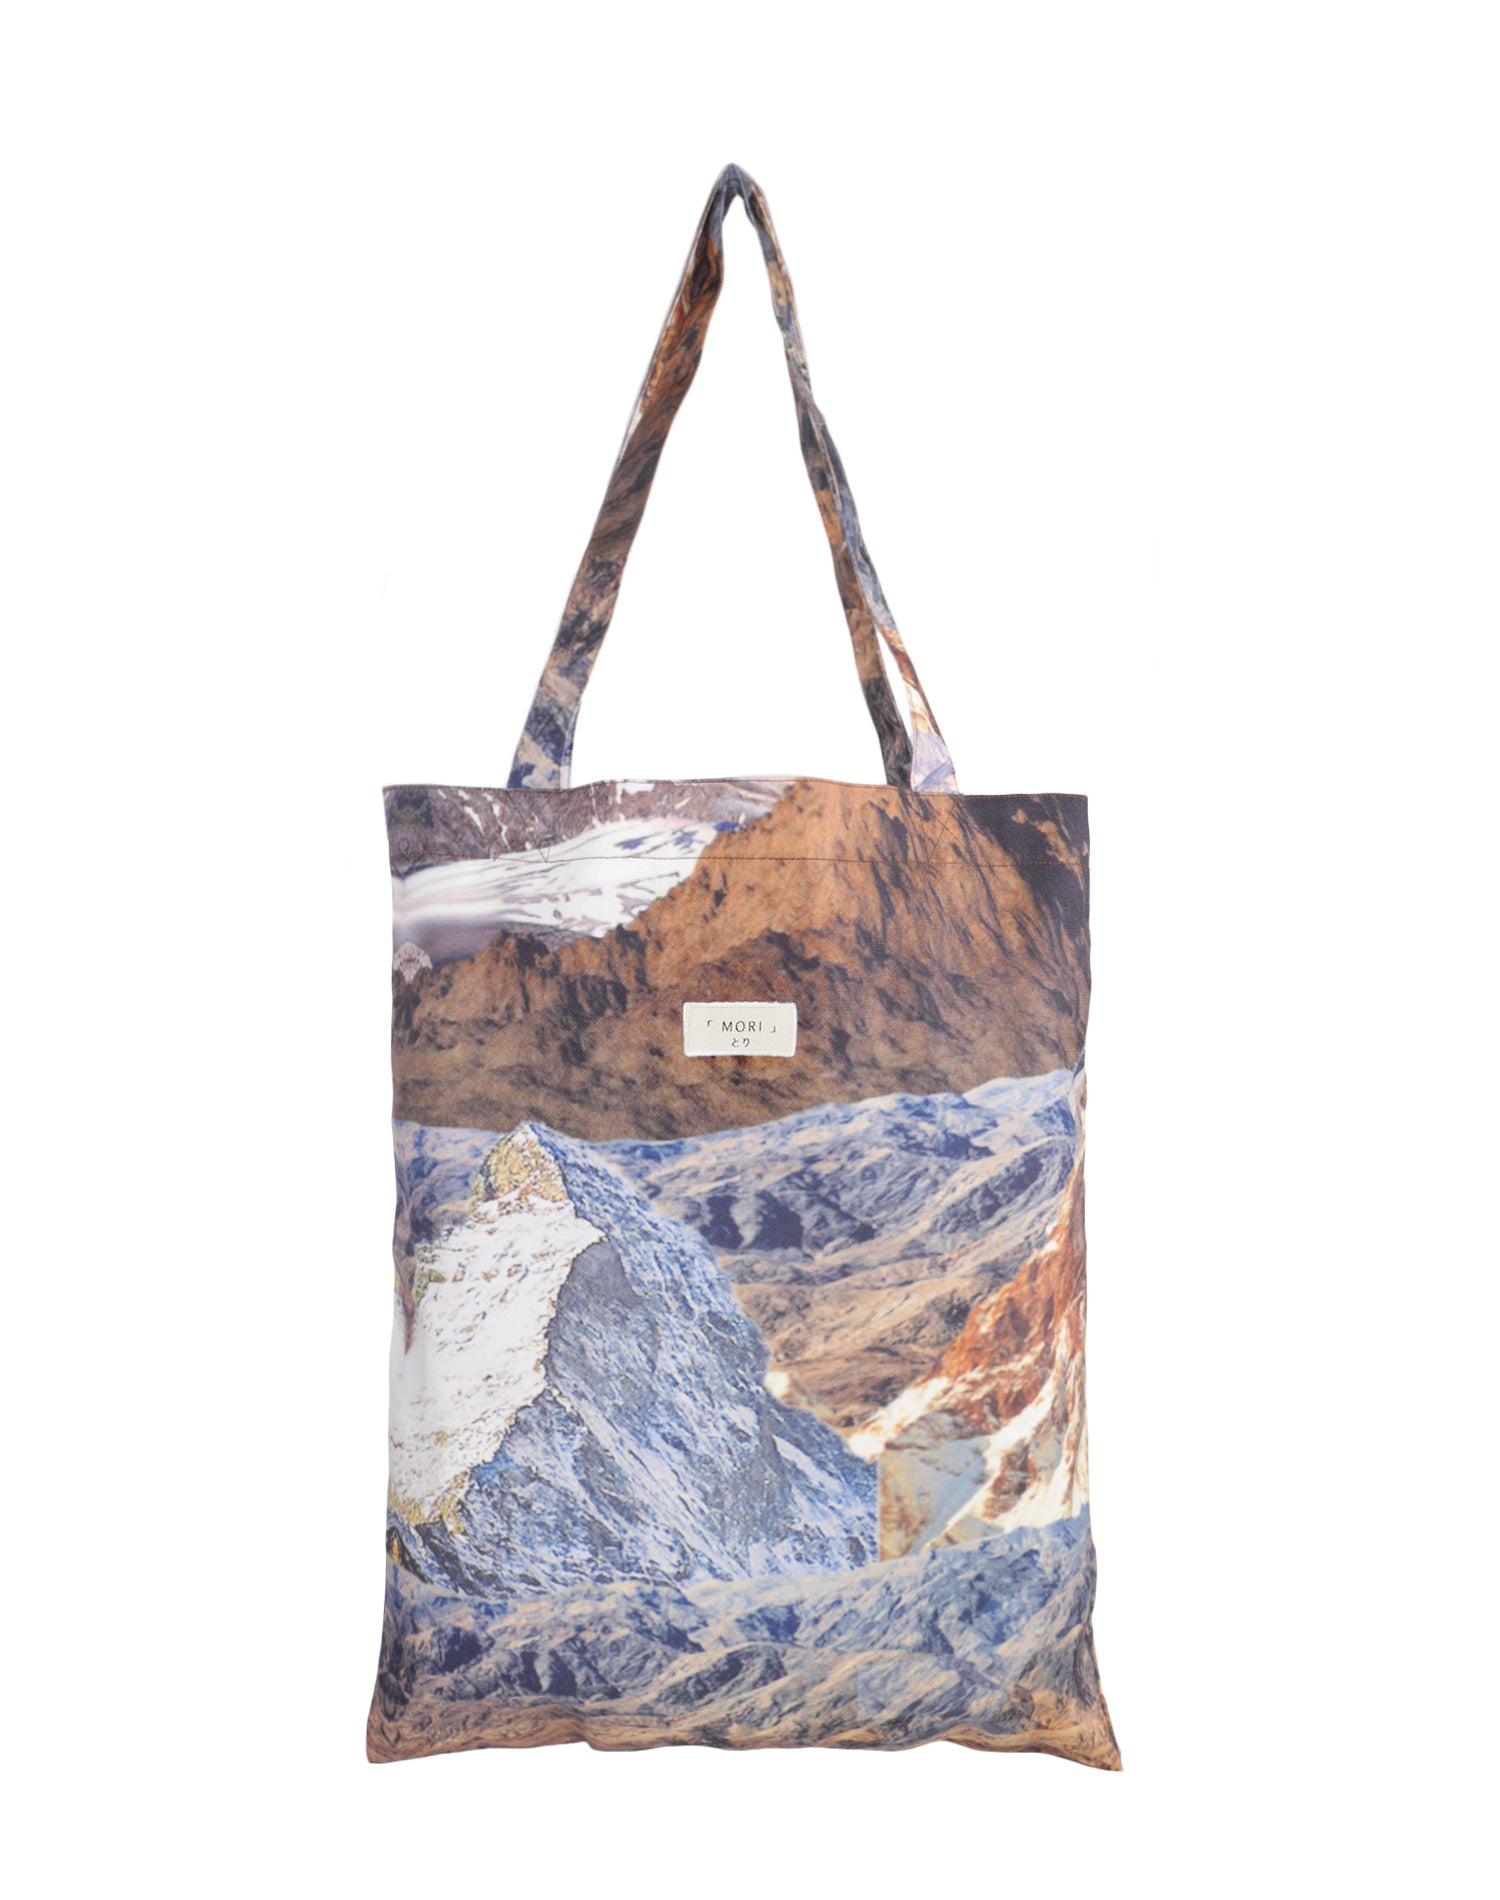 Brown Mountain Canvas Tote Bag.布朗山帆布側背袋